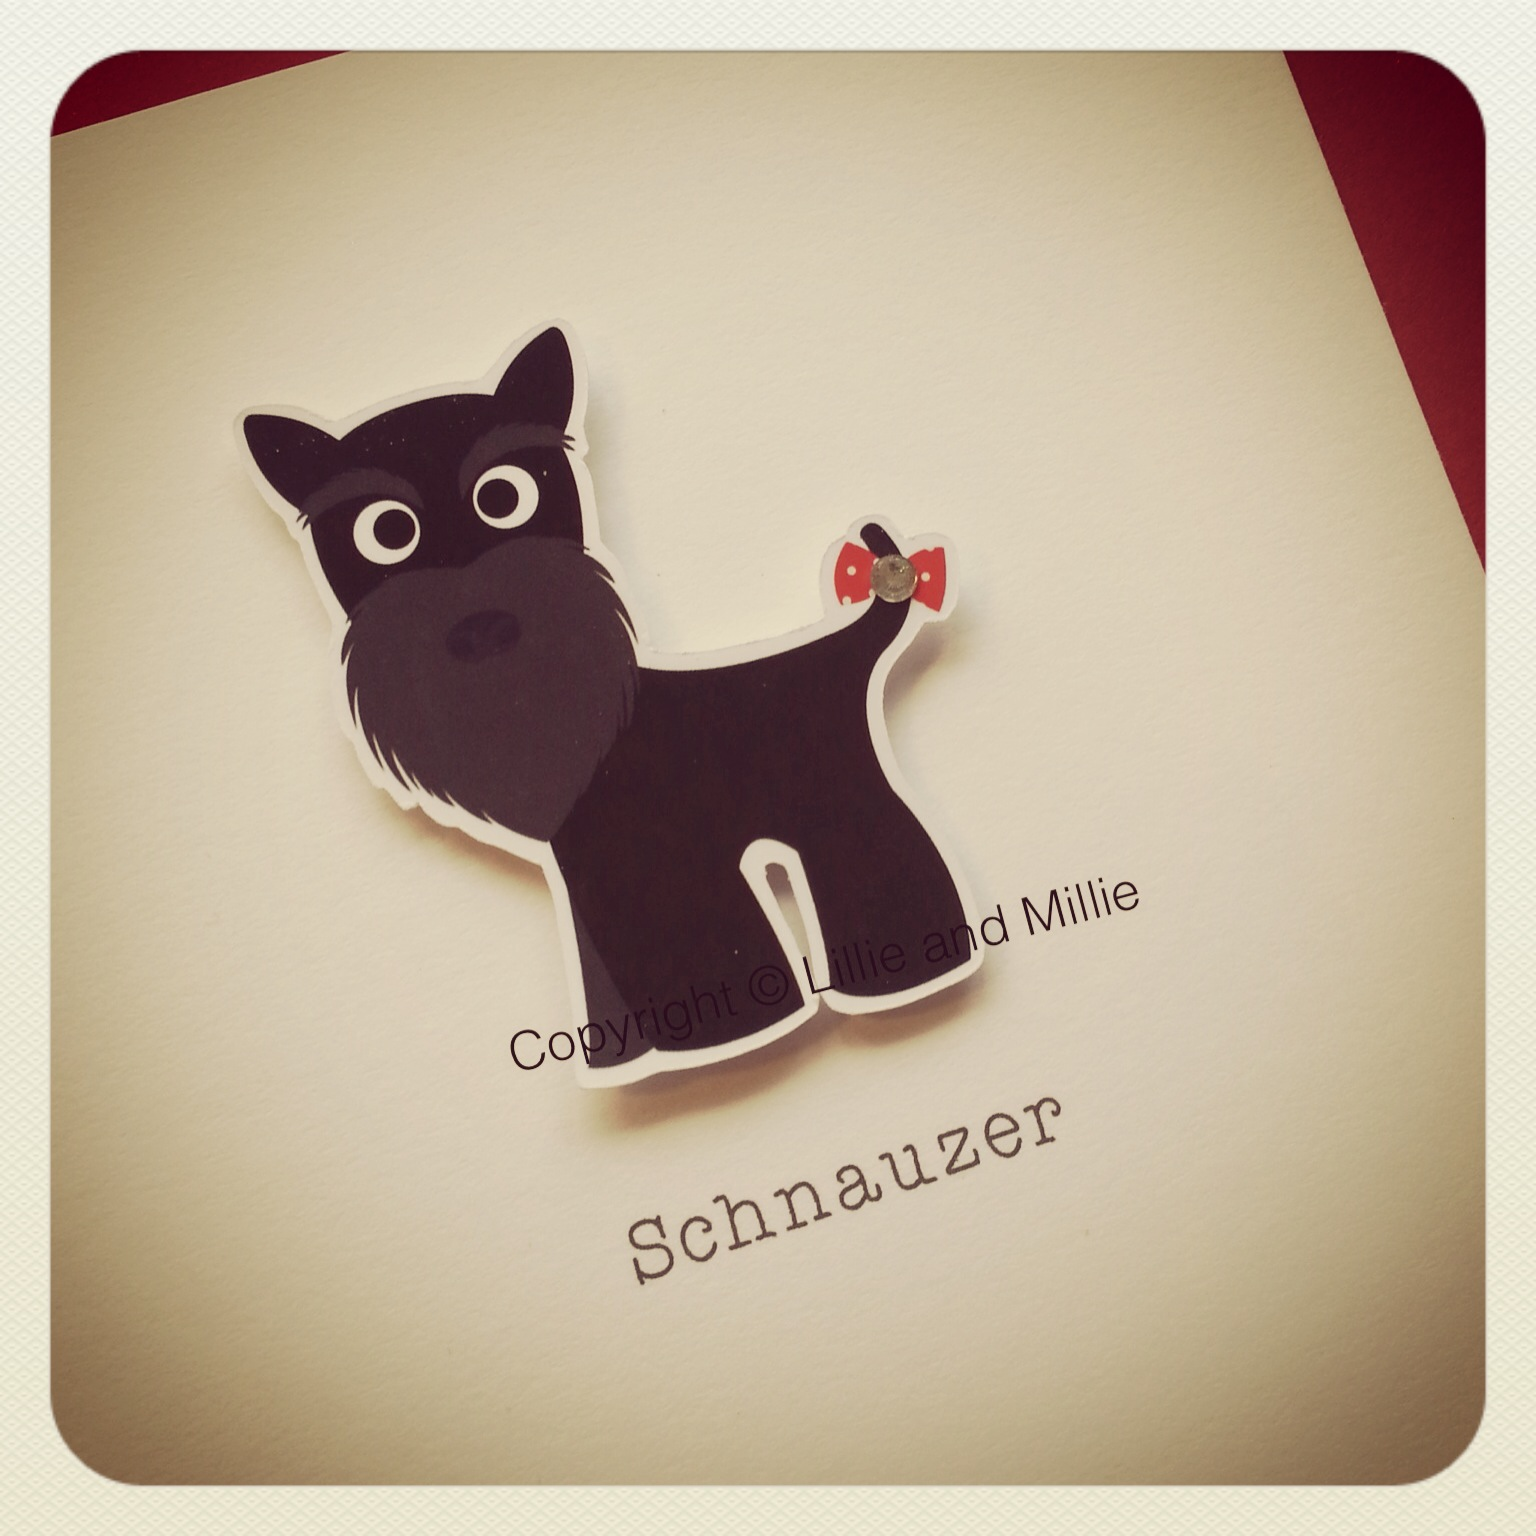 Schnauzer Dog Greetings Card